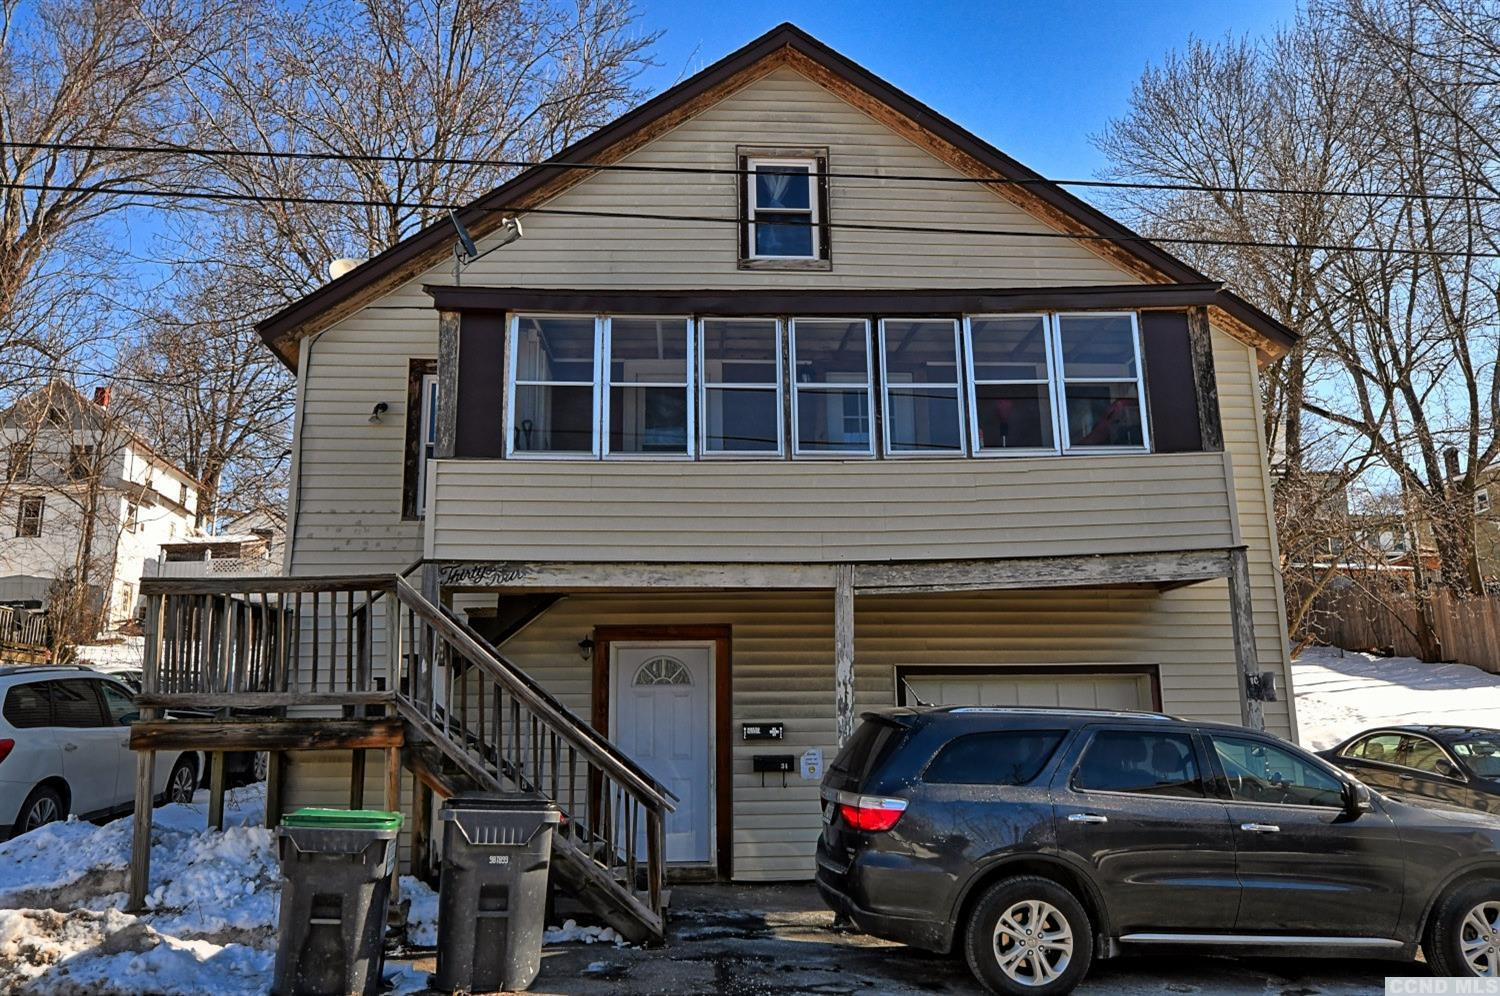 A 4 to 5 Bedroom, 3 Bathroom Home with a Garage in the Village of Catskill! The home is a single family home that has a ground level studio apartment. The ground level has a kitchen, a bedroom, and a full bath. The upstairs apartment consists of the 2nd & 3rd floors. The 2nd floor has 3 bedrooms, 1 full bath, a large living room, a kitchen, and back & front enclosed porches. The 3rd floor is utilized as a master bedroom & bath suite. There is a backyard & 1 off street parking space. The home is walking distance to Main St, the Historic Catskill Point, the Hudson River, the Catskill Creek, & more. It's a Great Village Home! A Great Mother/Daughter Home! Please view our 3D Virtual Tour of the home.